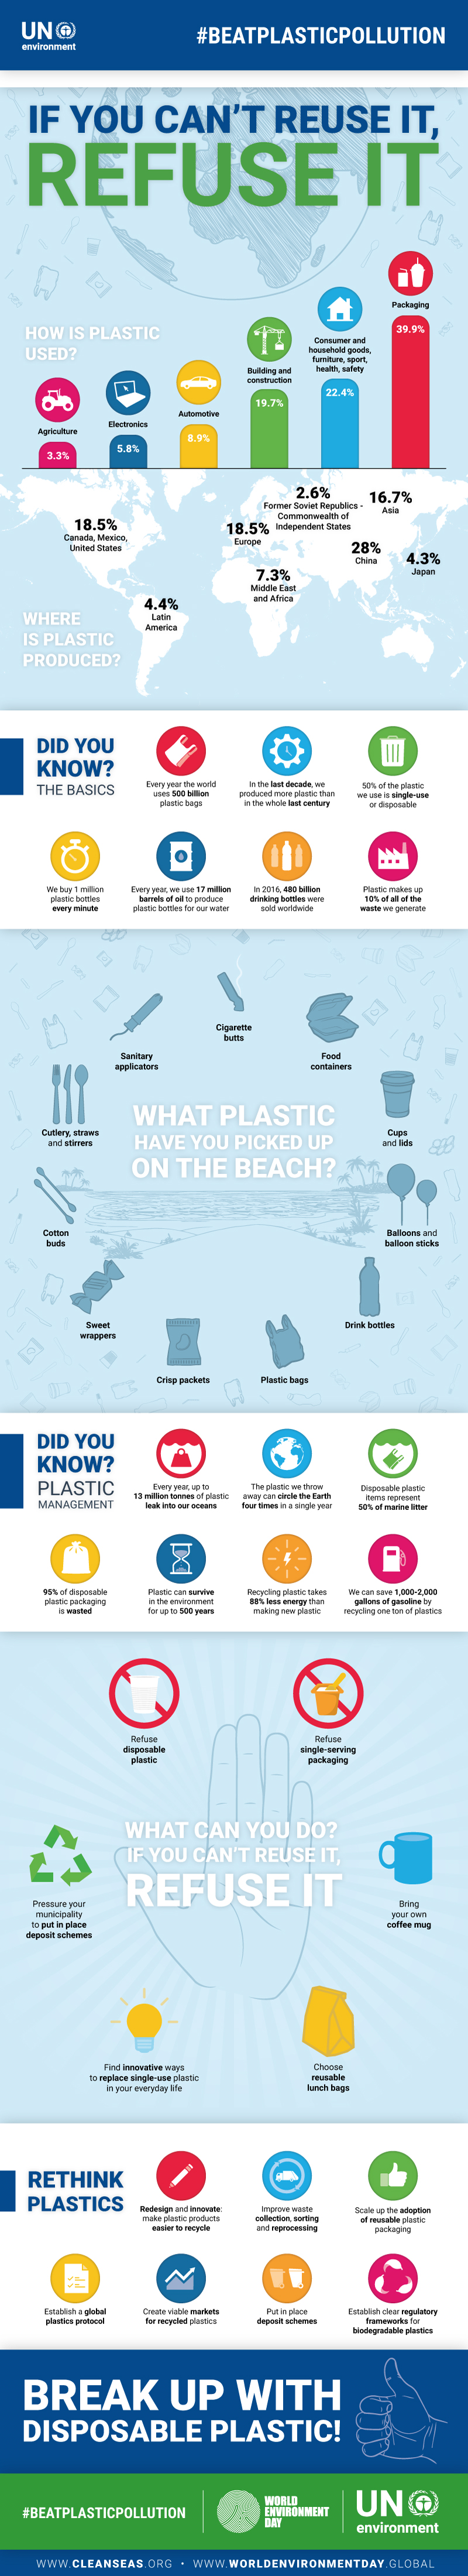 infographic - say no to plastic